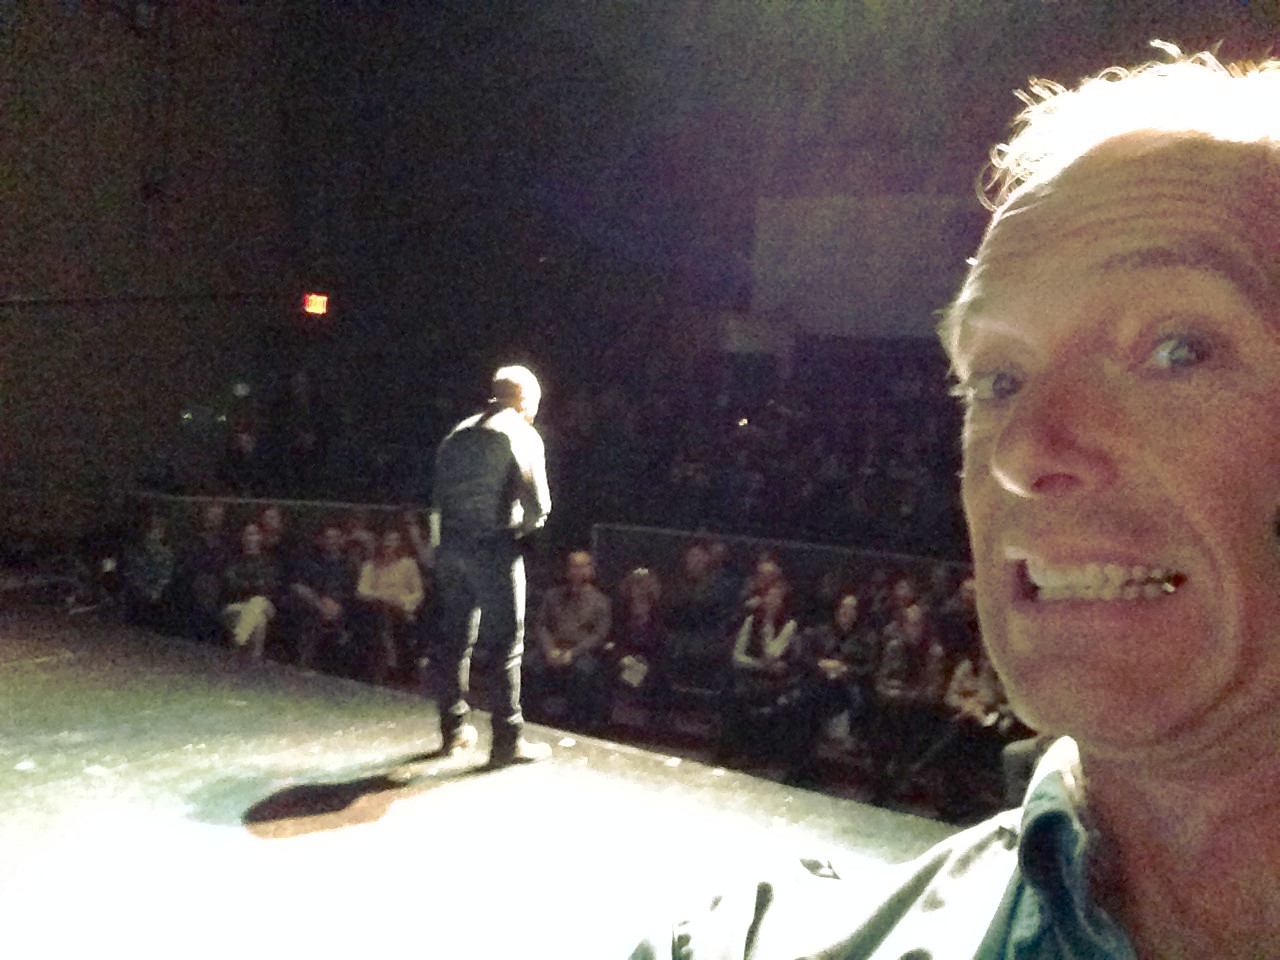 A selfie from the stage creates a ruckus.